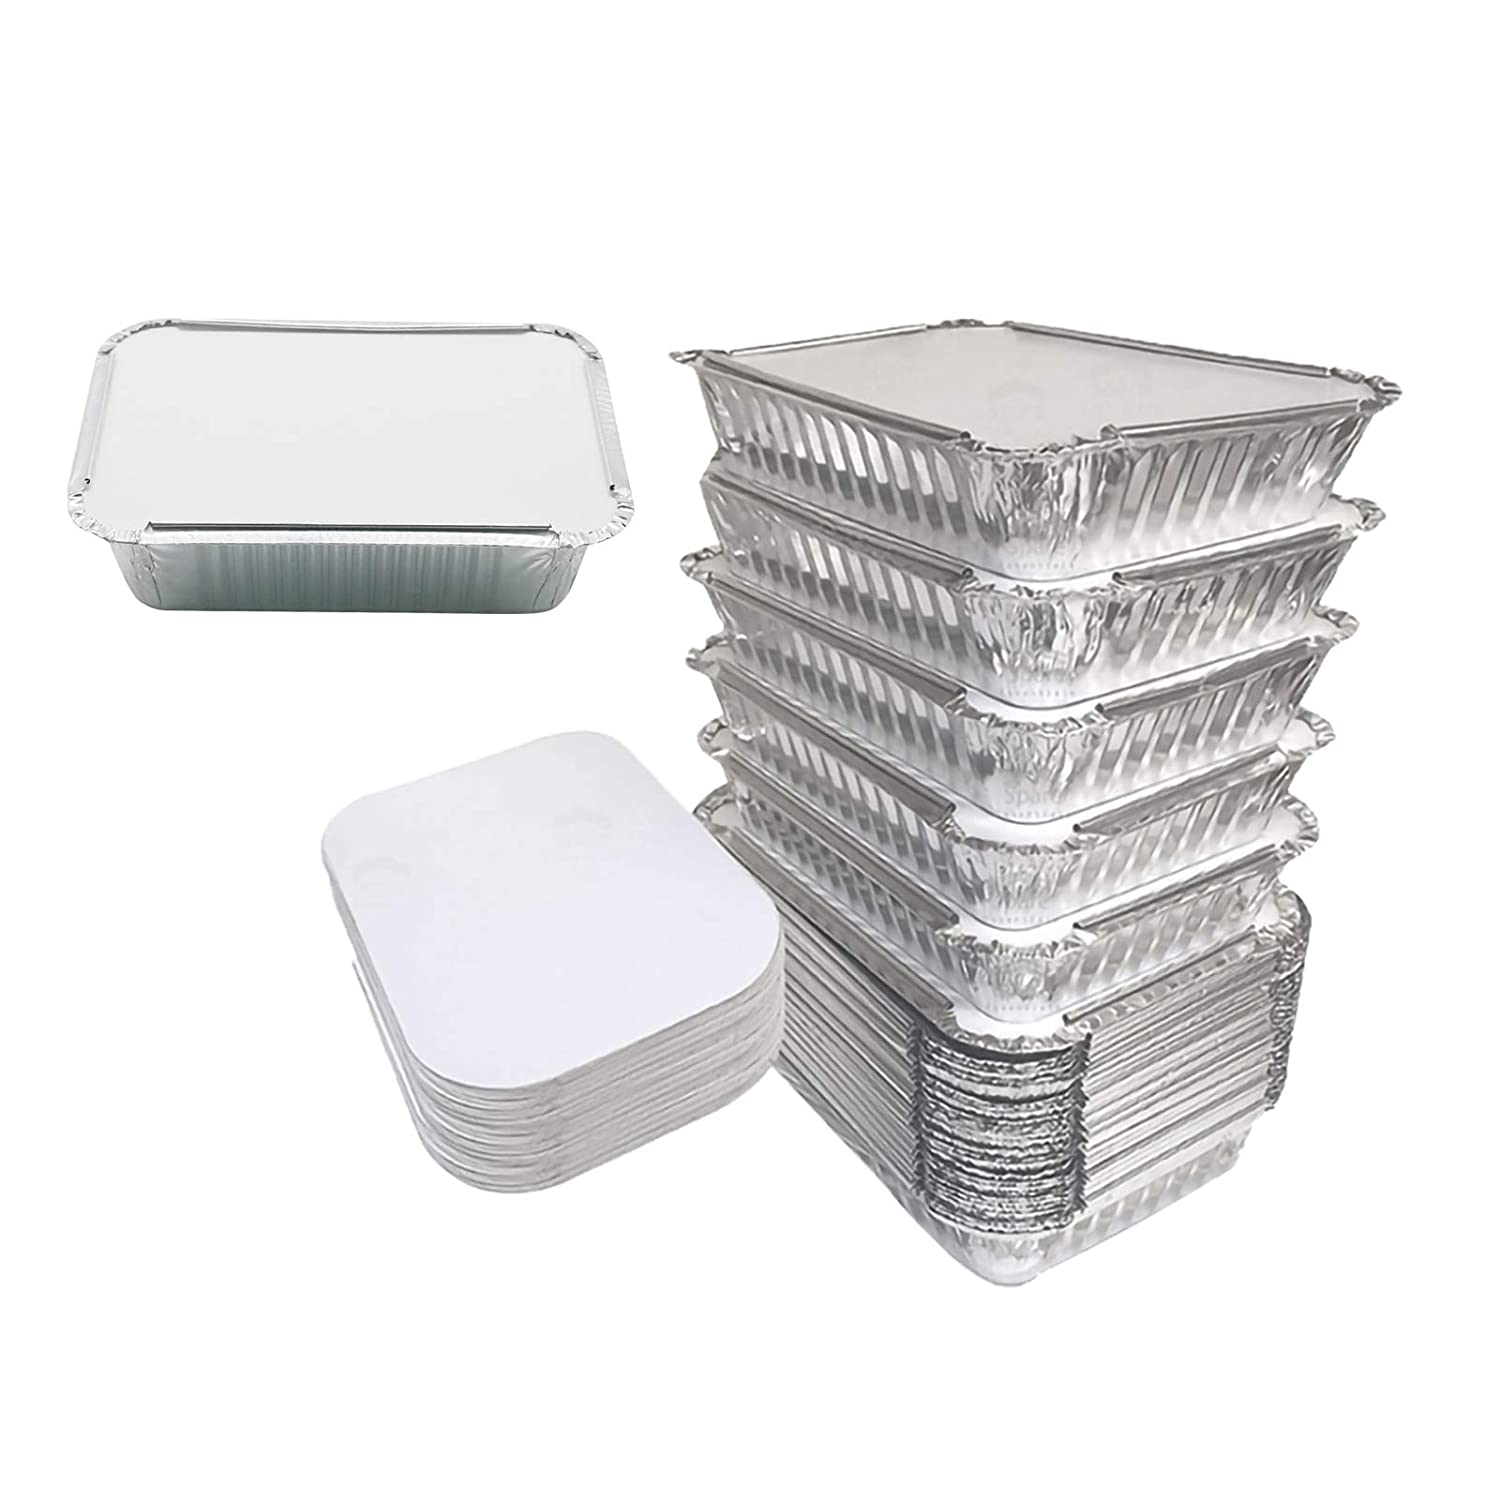 Sadocom 20 pcs Aluminum Pans Disposable with Lid Portable Food Take Out Containers Recyclable Tin Foil Pans for Cooking, Baking, Grilling, Heating, Storing, Prepare Meal- 10 x 7.4 x 2.4